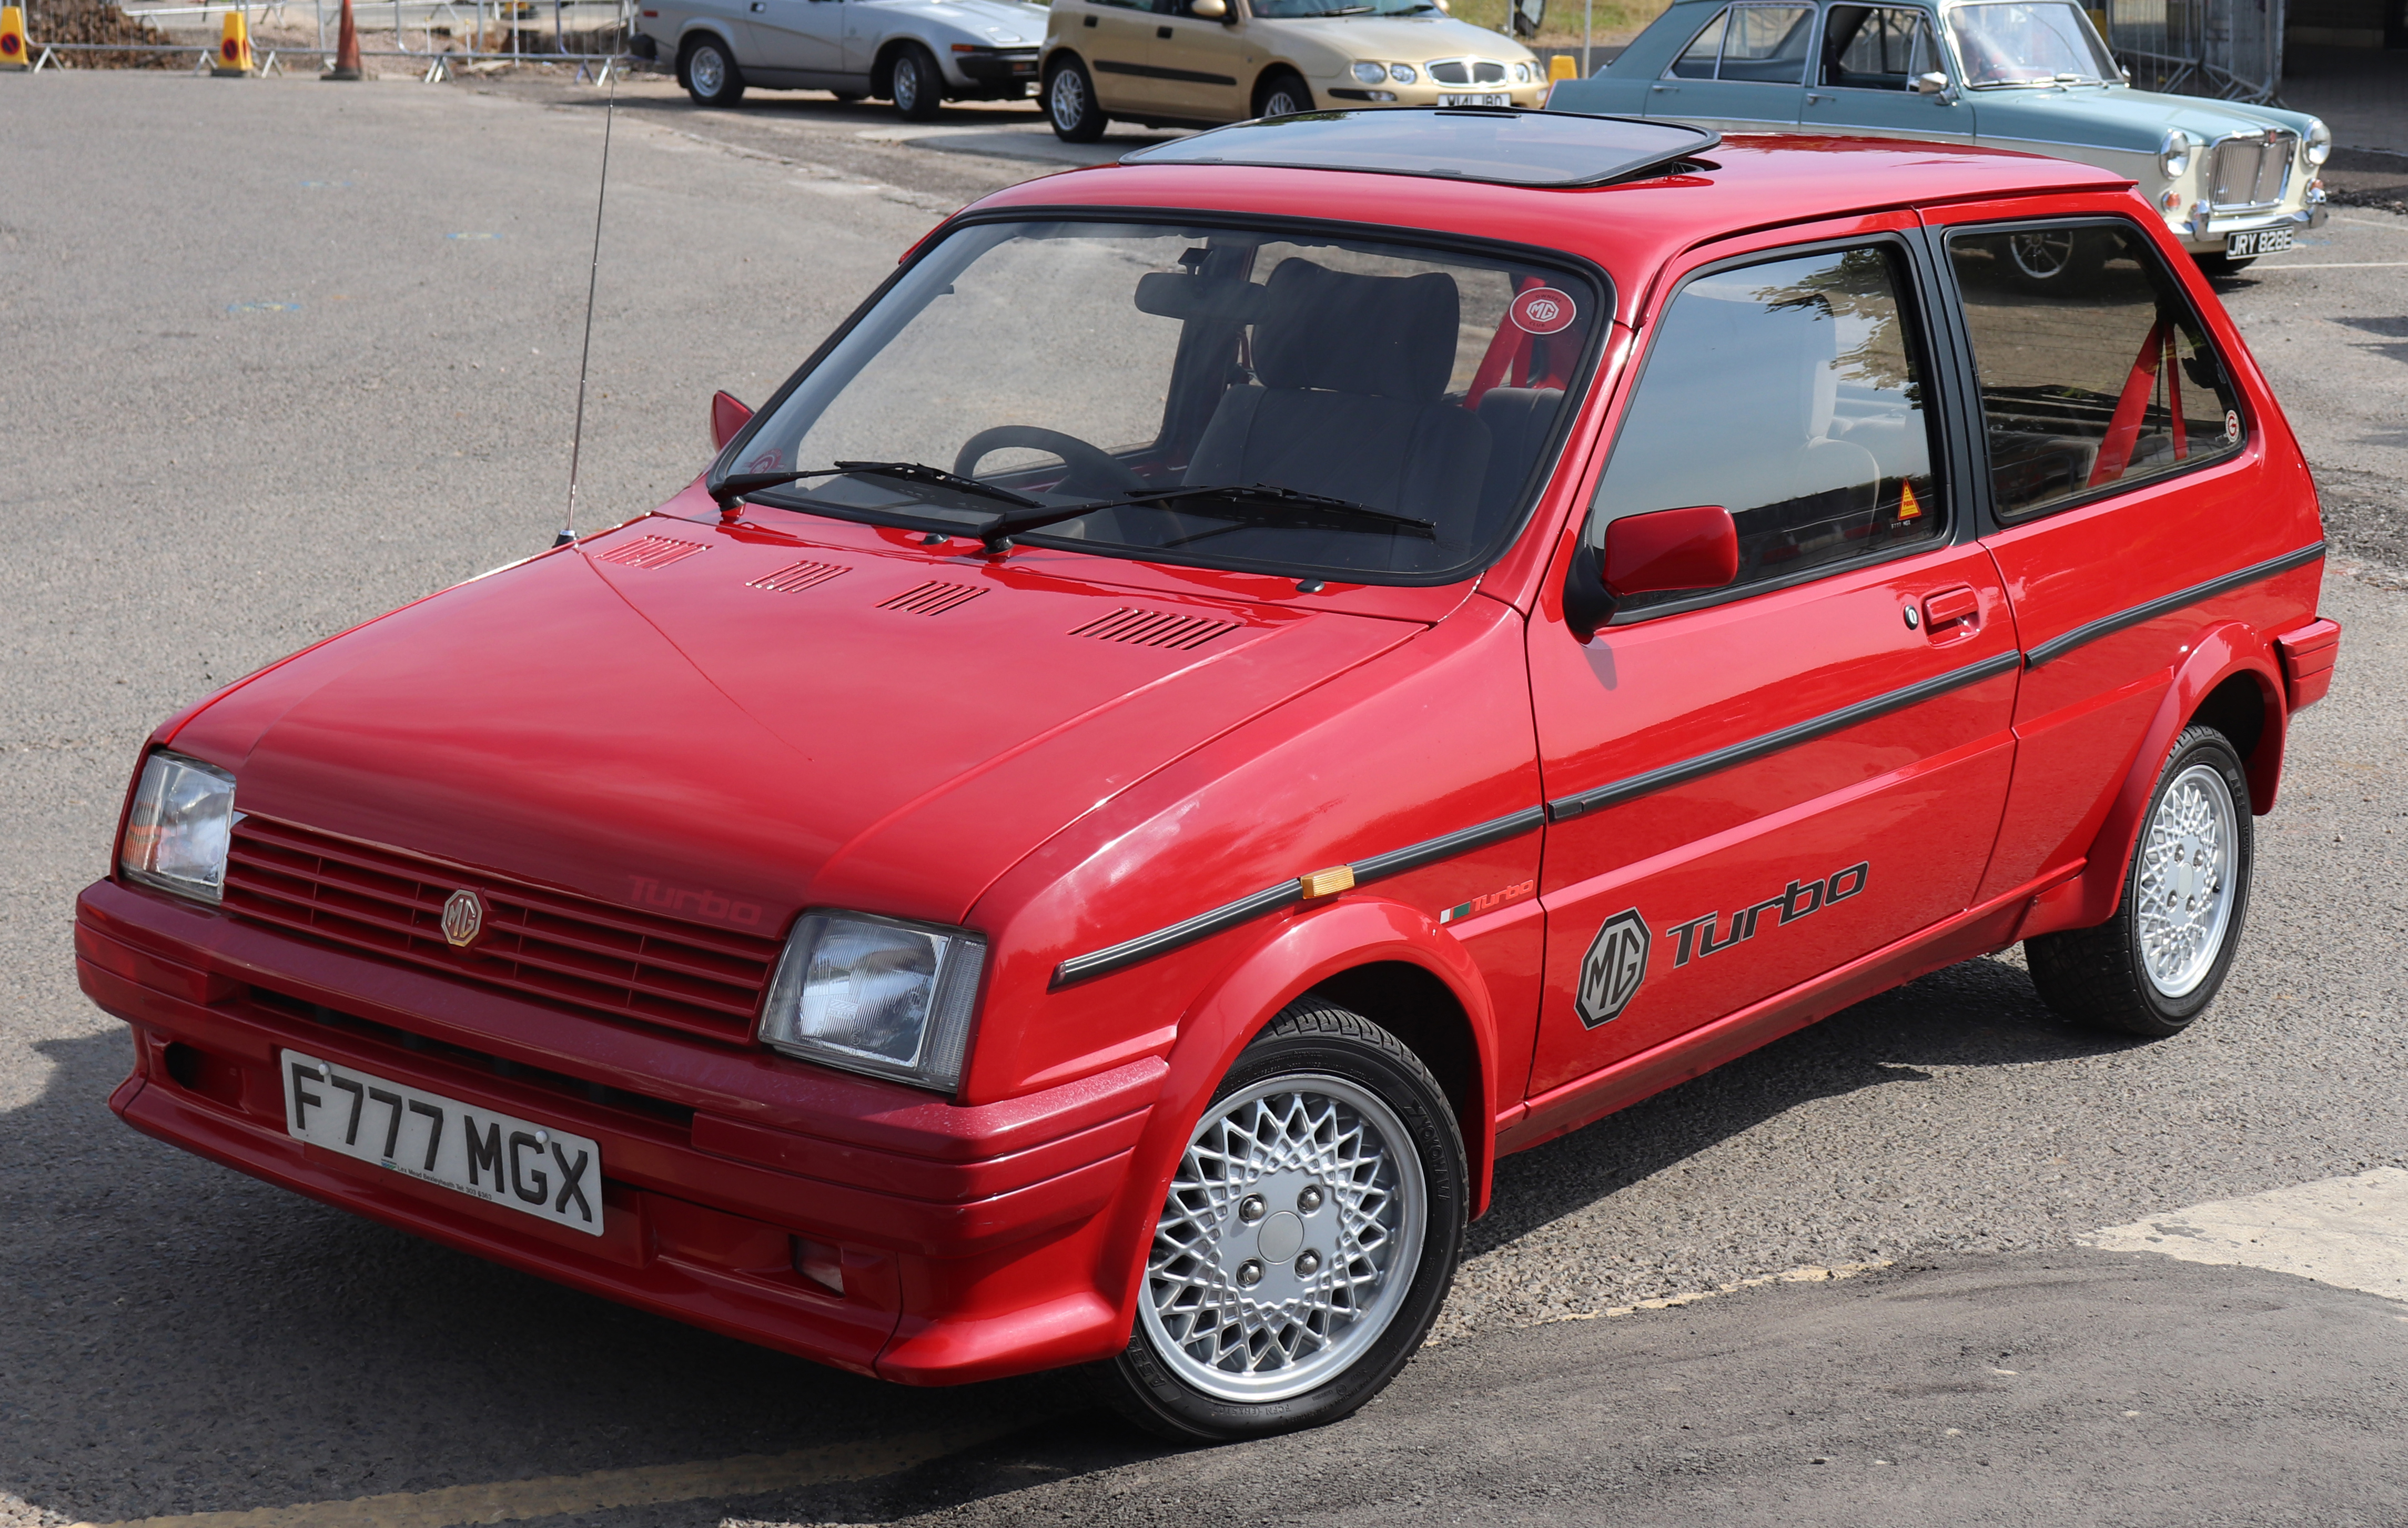 1989_MG_Metro_Turbo_1.3_Front.jpg